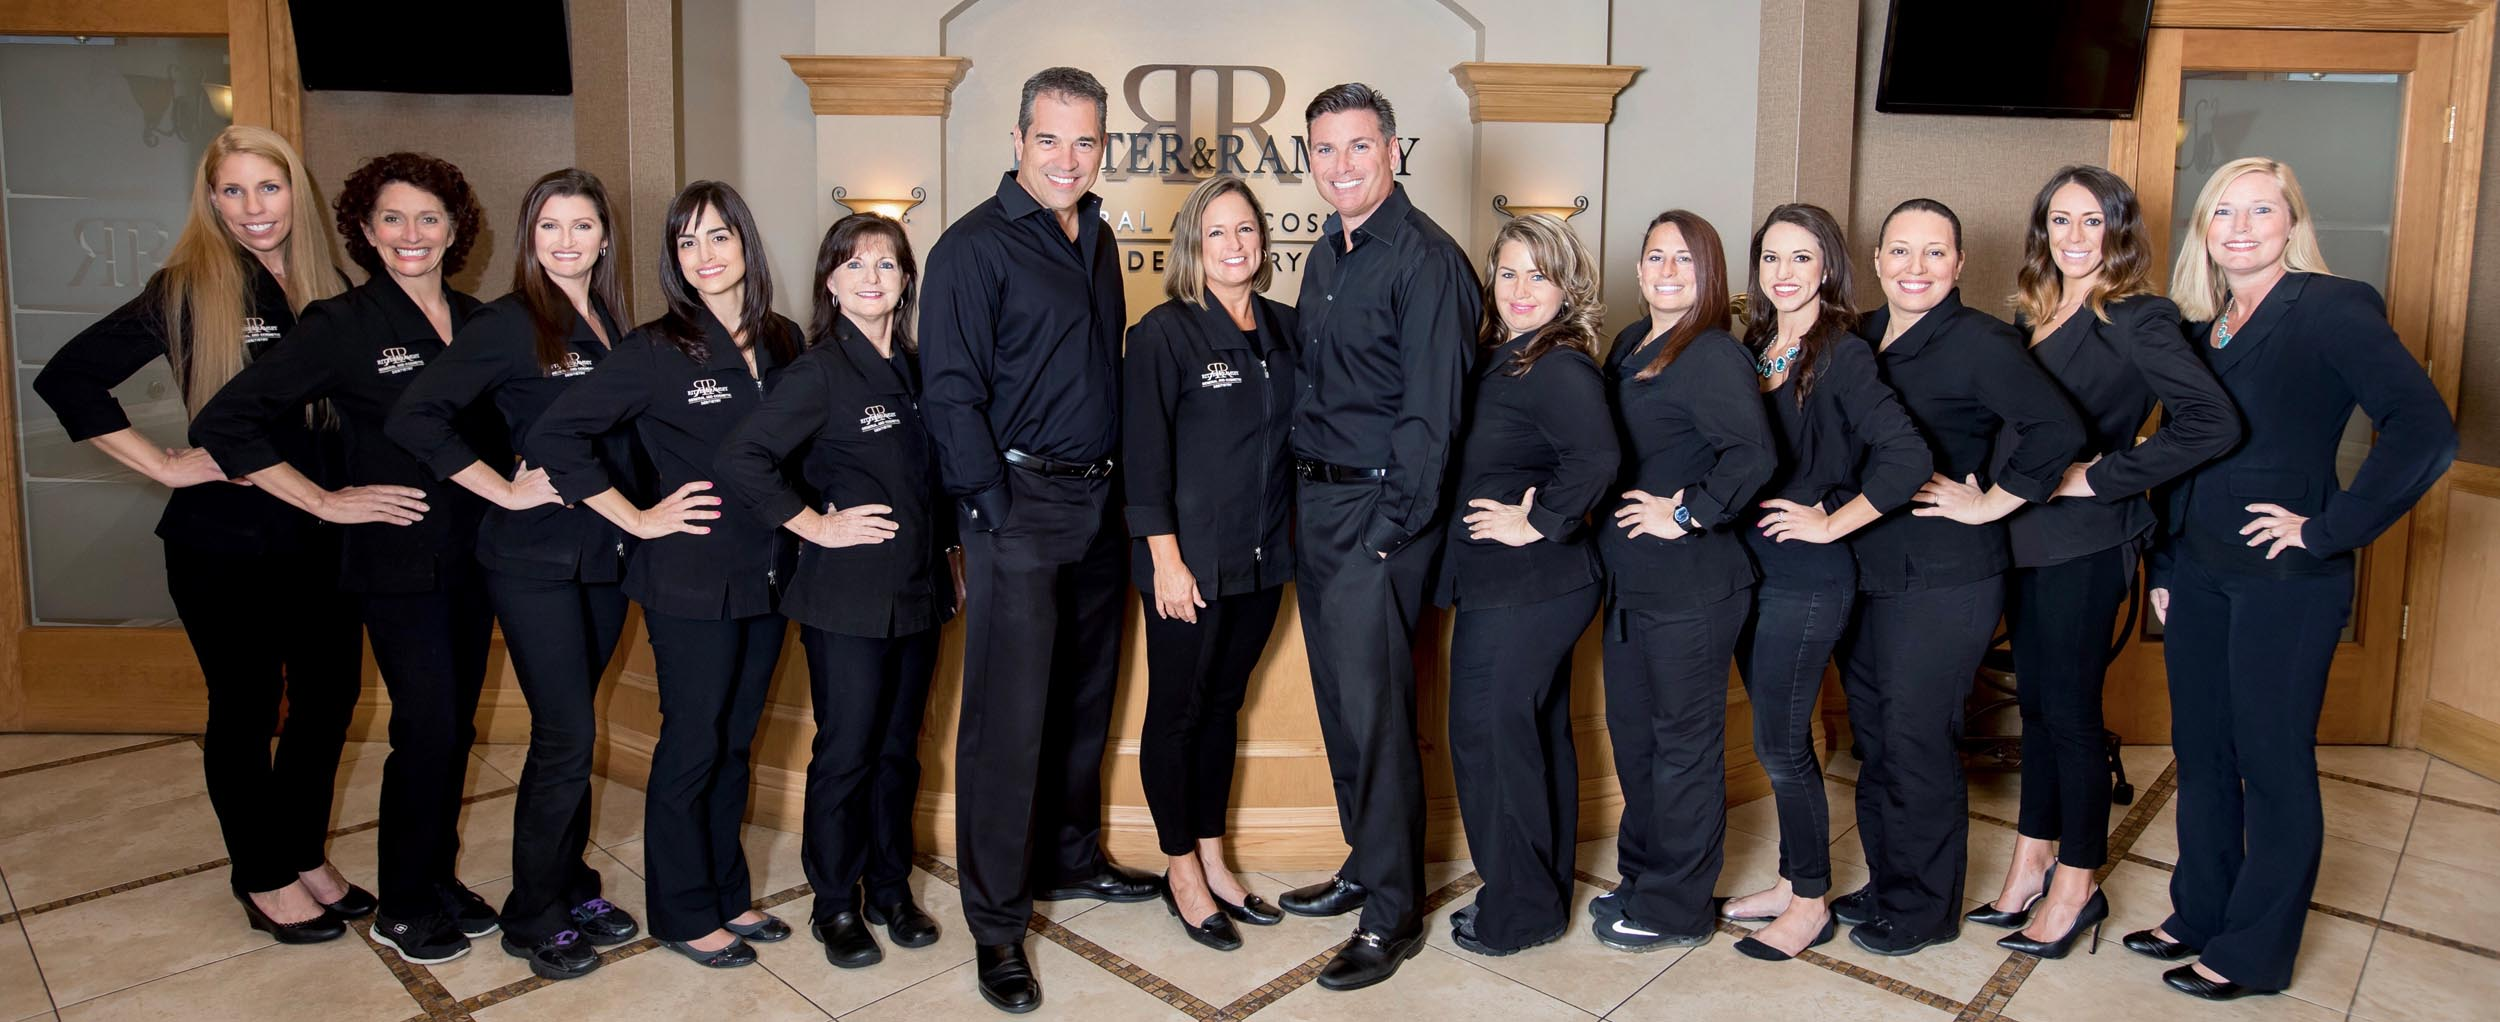 Ritter and Ramsey General and Cosmetic Dentistry Staff